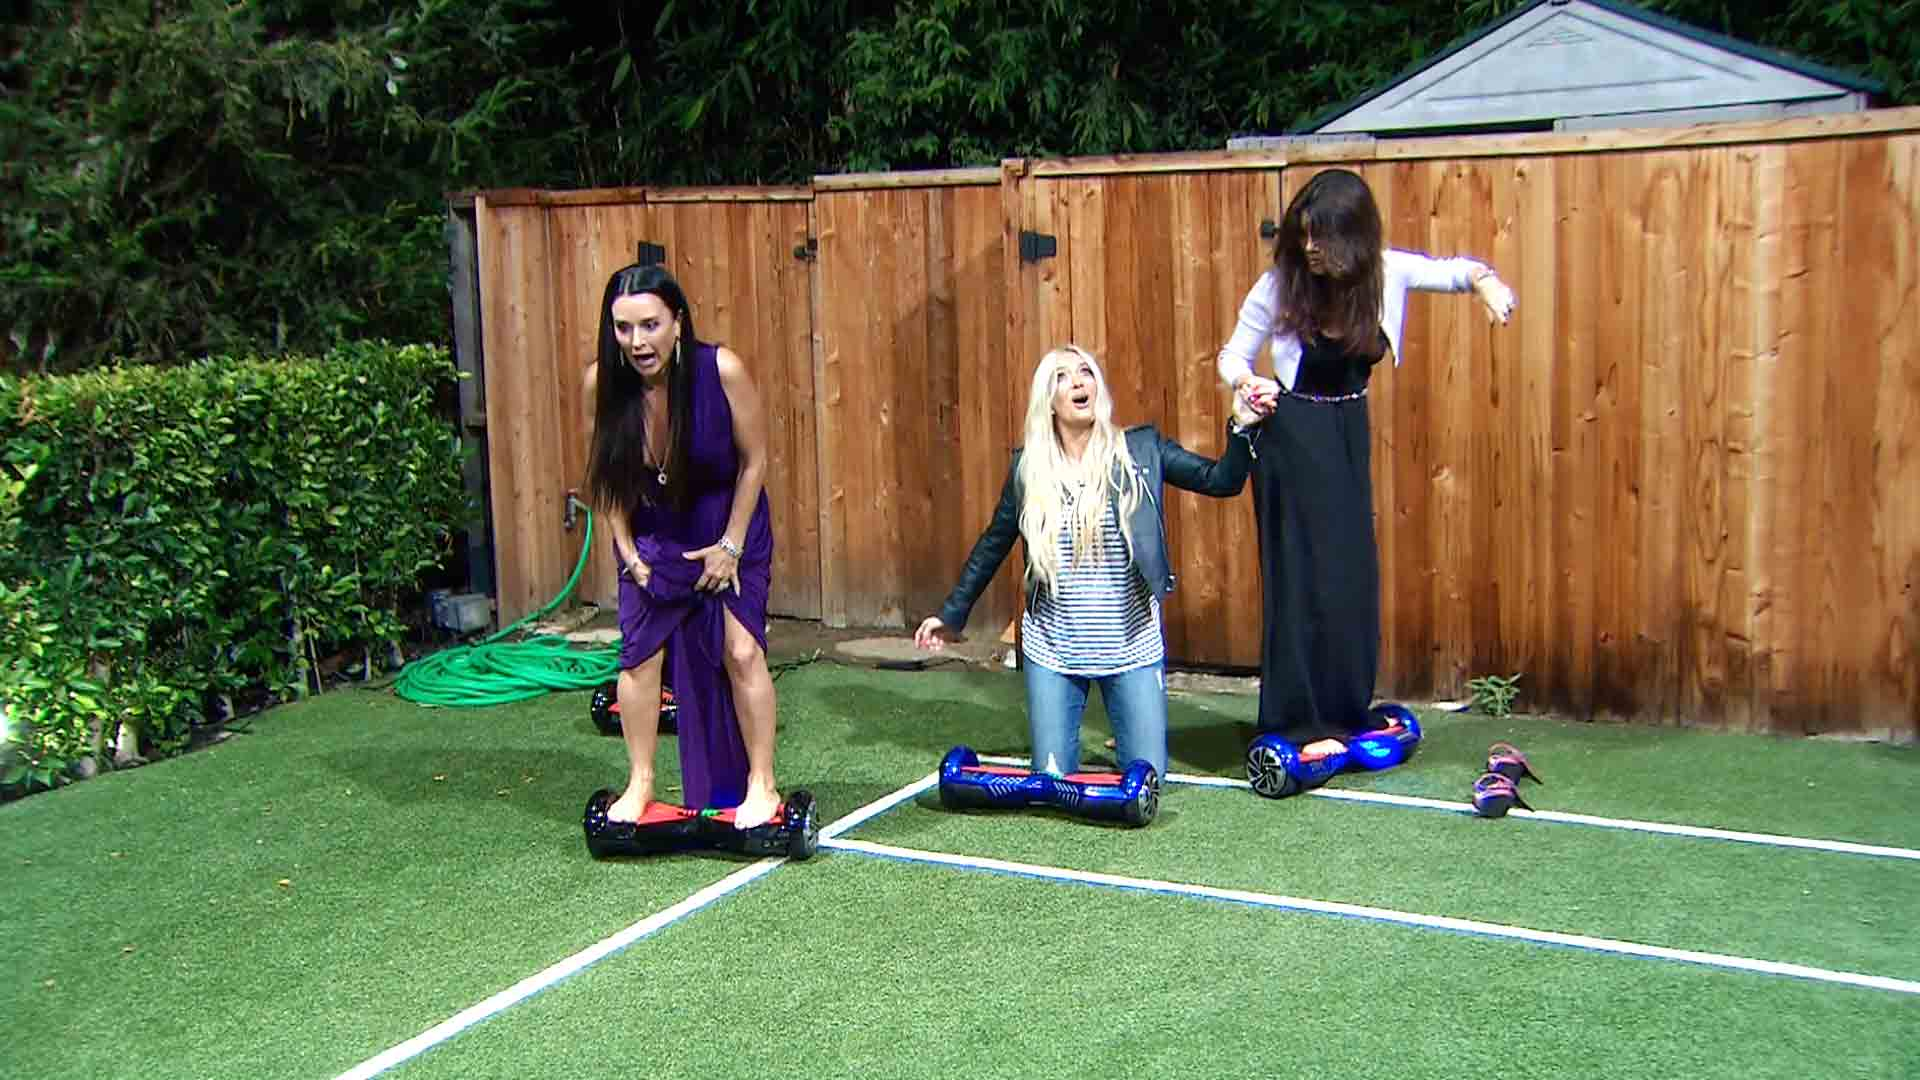 Unseen Moment: Housewives on Hoverboards